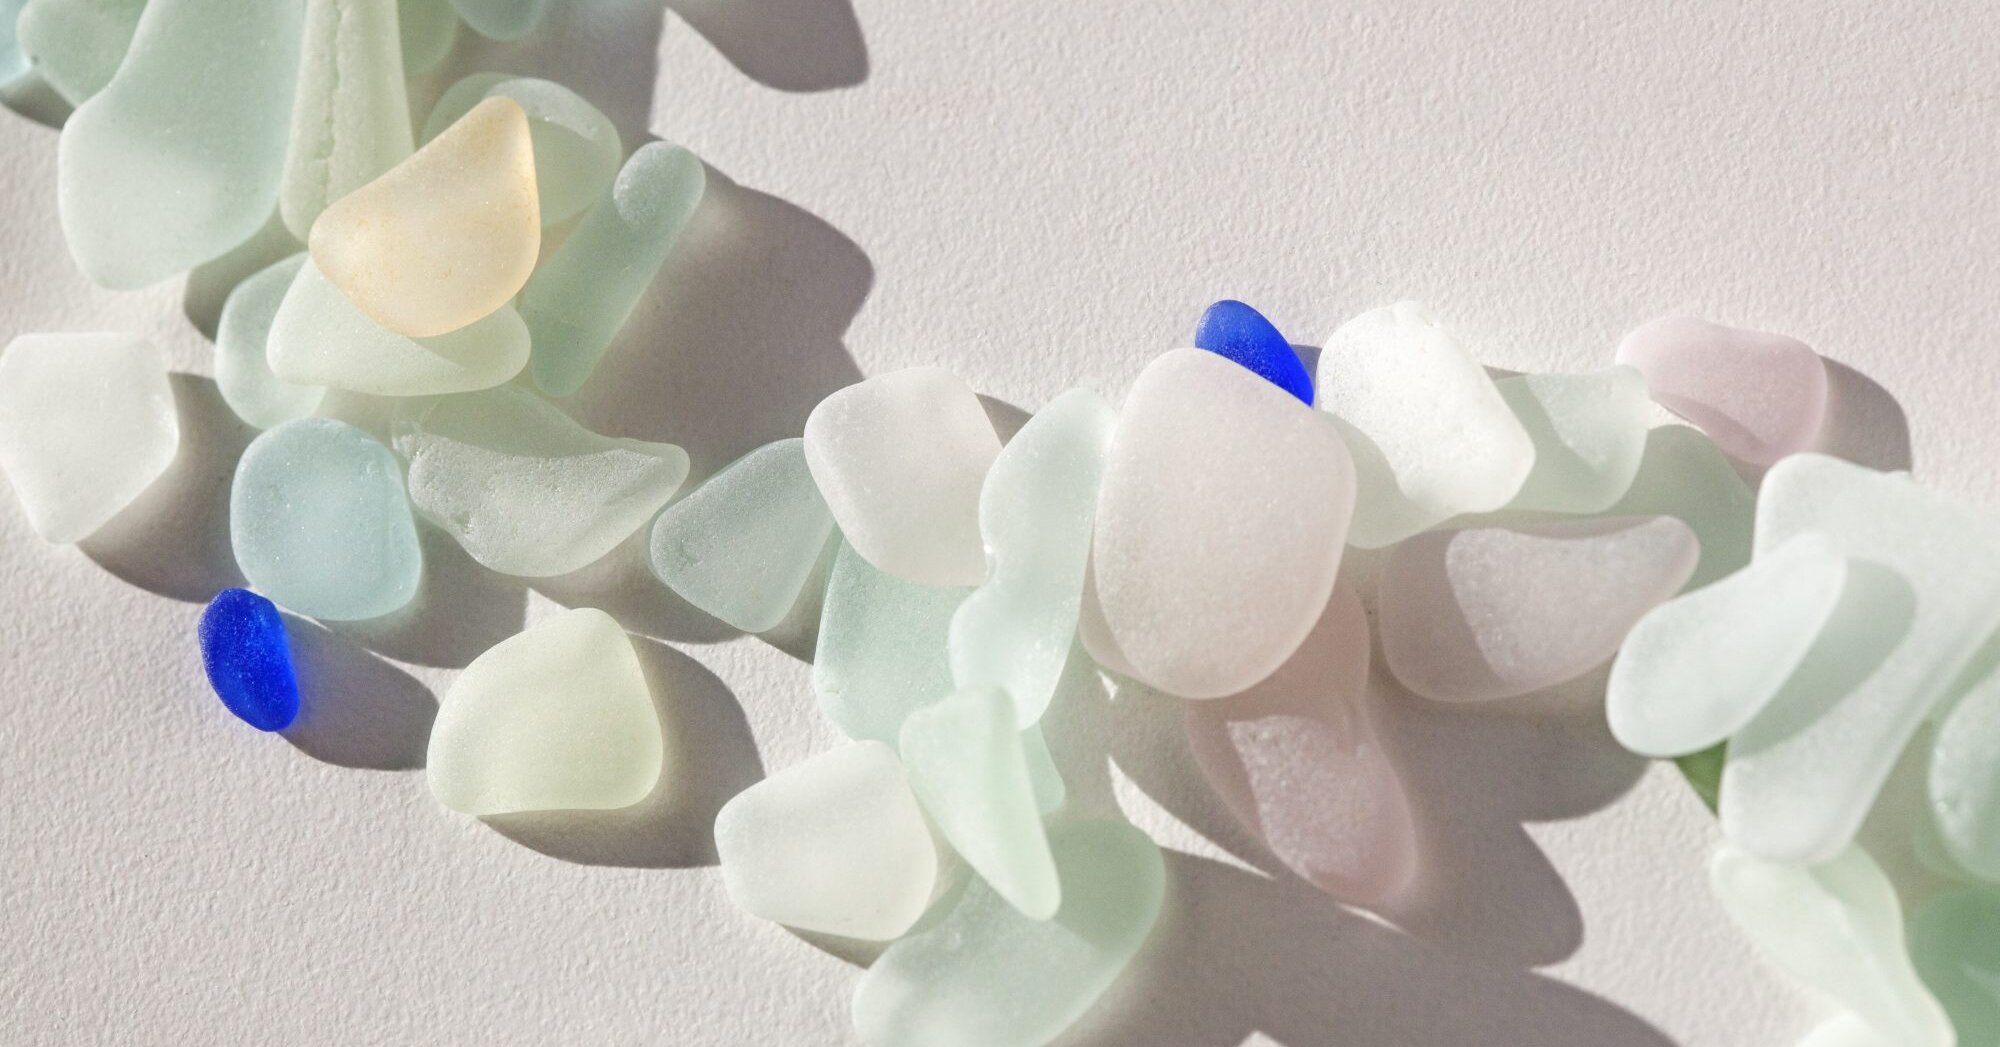 What Is Sea Glass and Where to Find It, According to Beachcombers